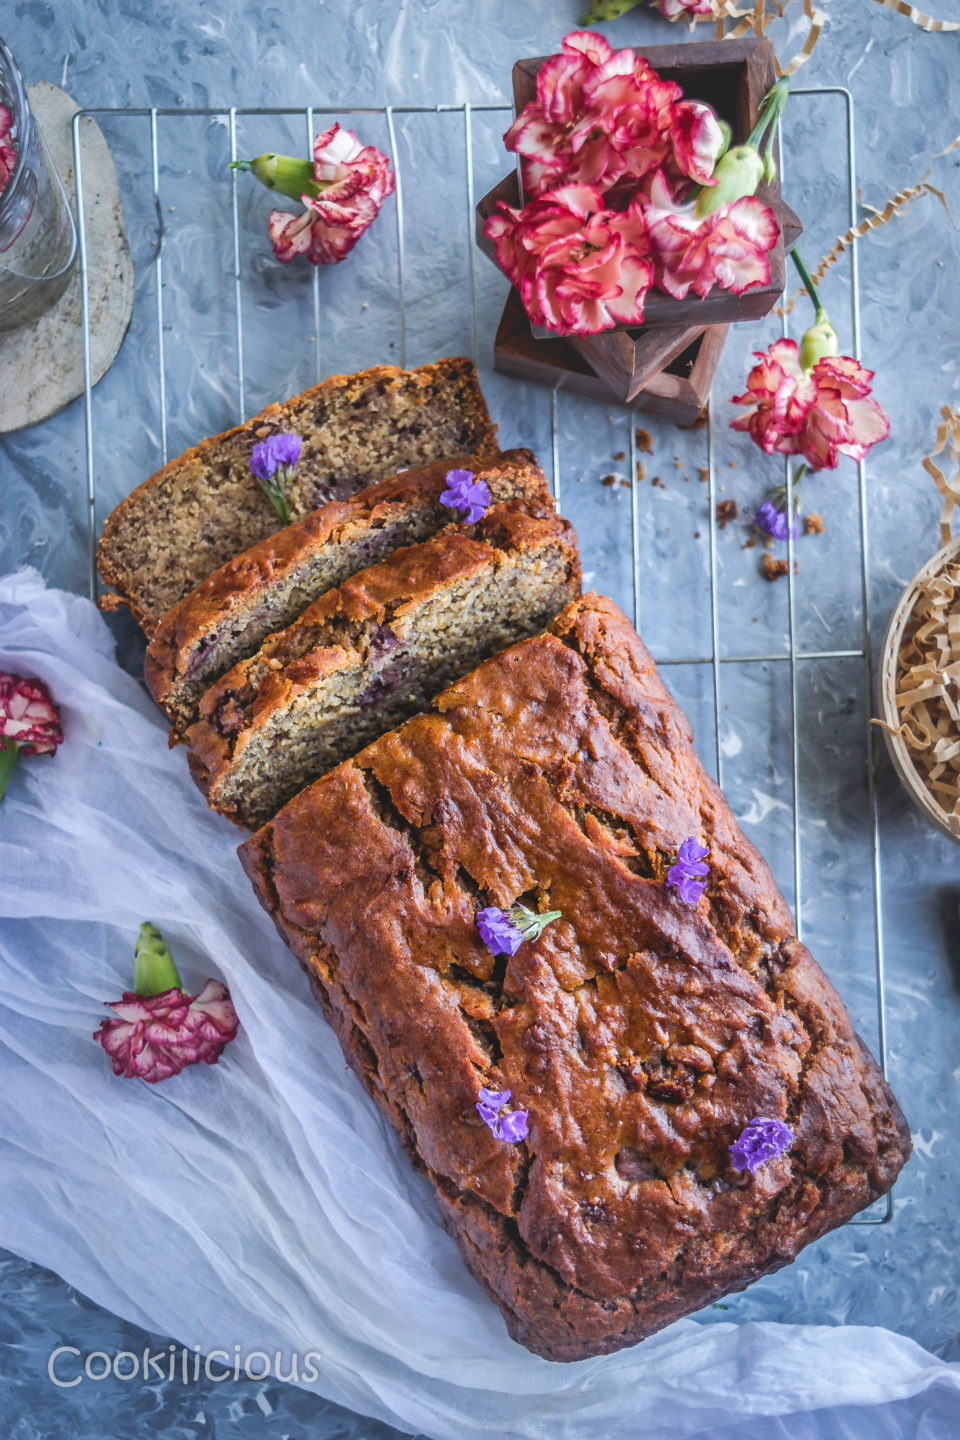 flat lay image of Banana & Strawberry Bread where half of it is cut in slices and flowers around it